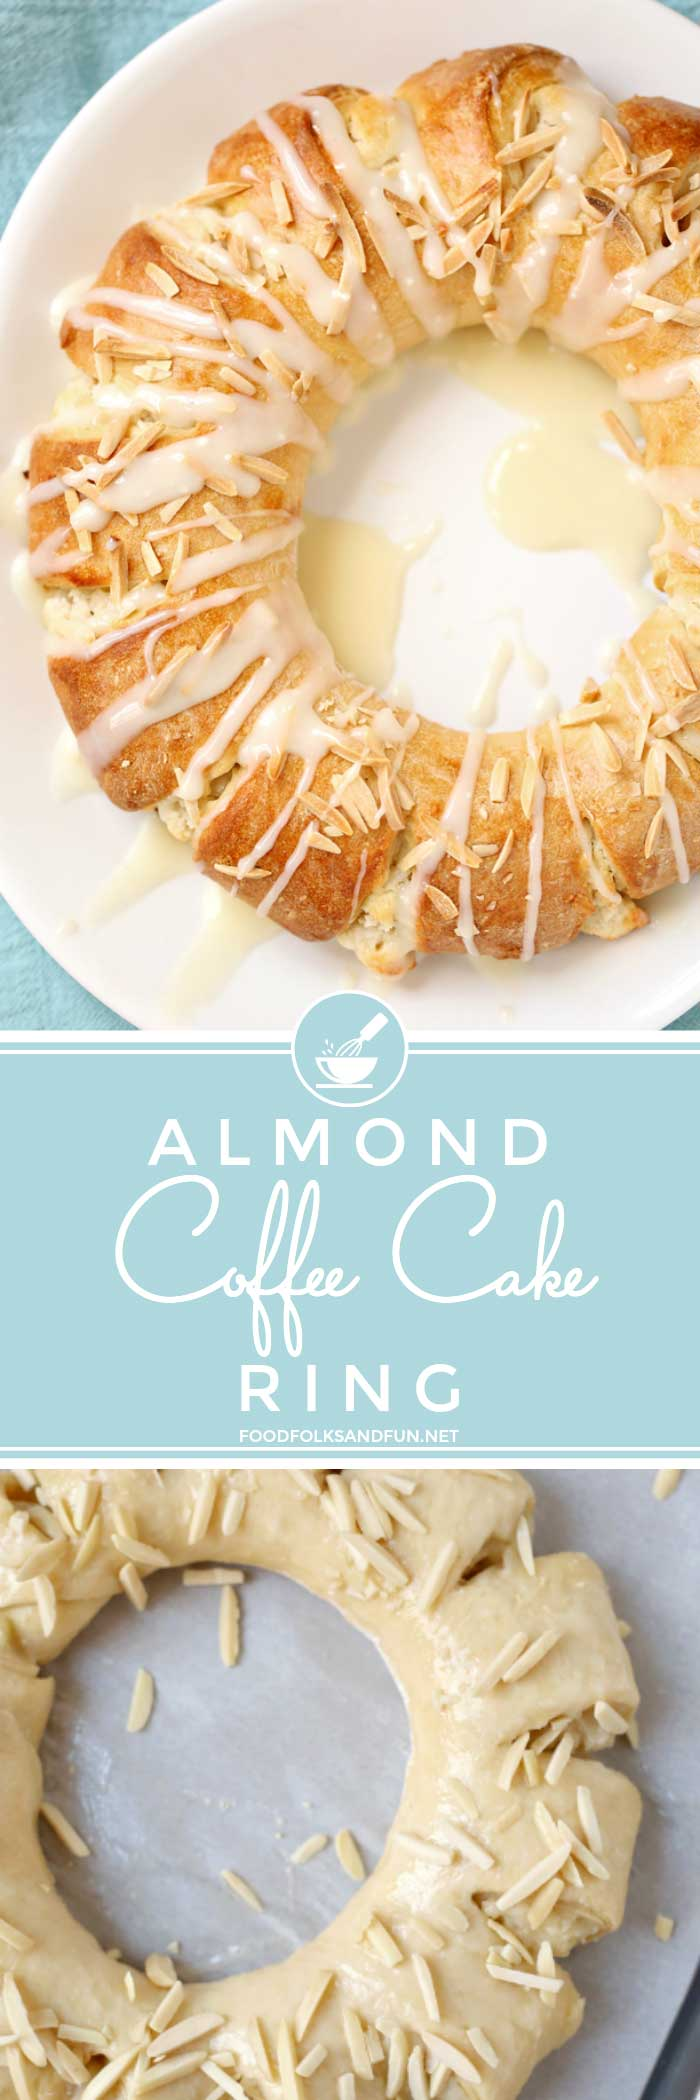 Almond Coffee Cake Ring (Tea Ring) + RECIPE VIDEO! • Food, Folks and Fun